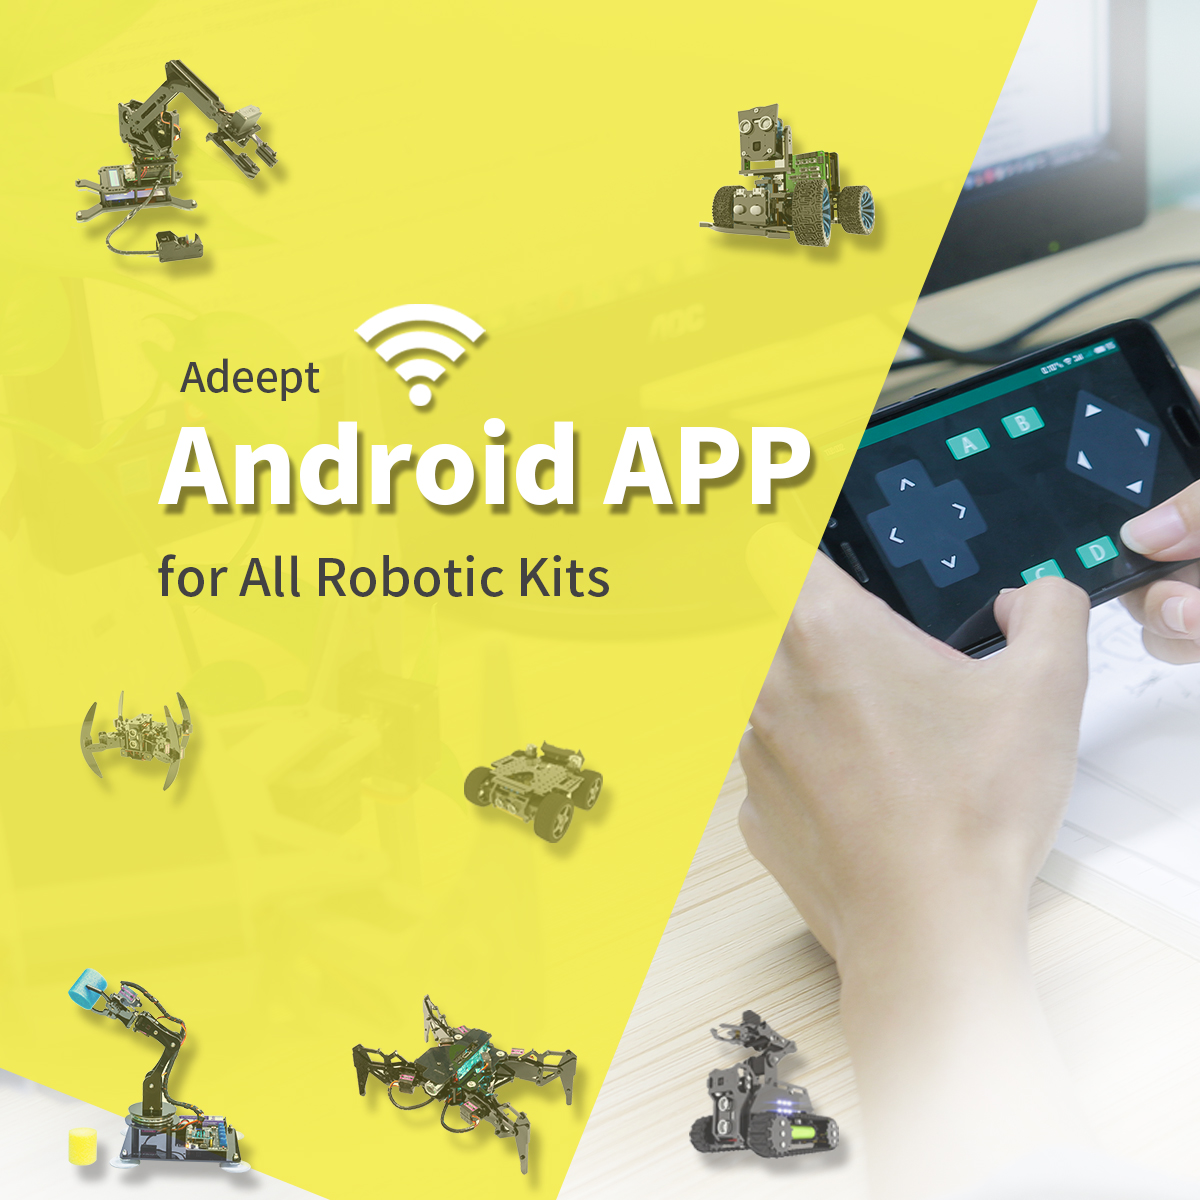 Adeept Android App for All Robotic Kits